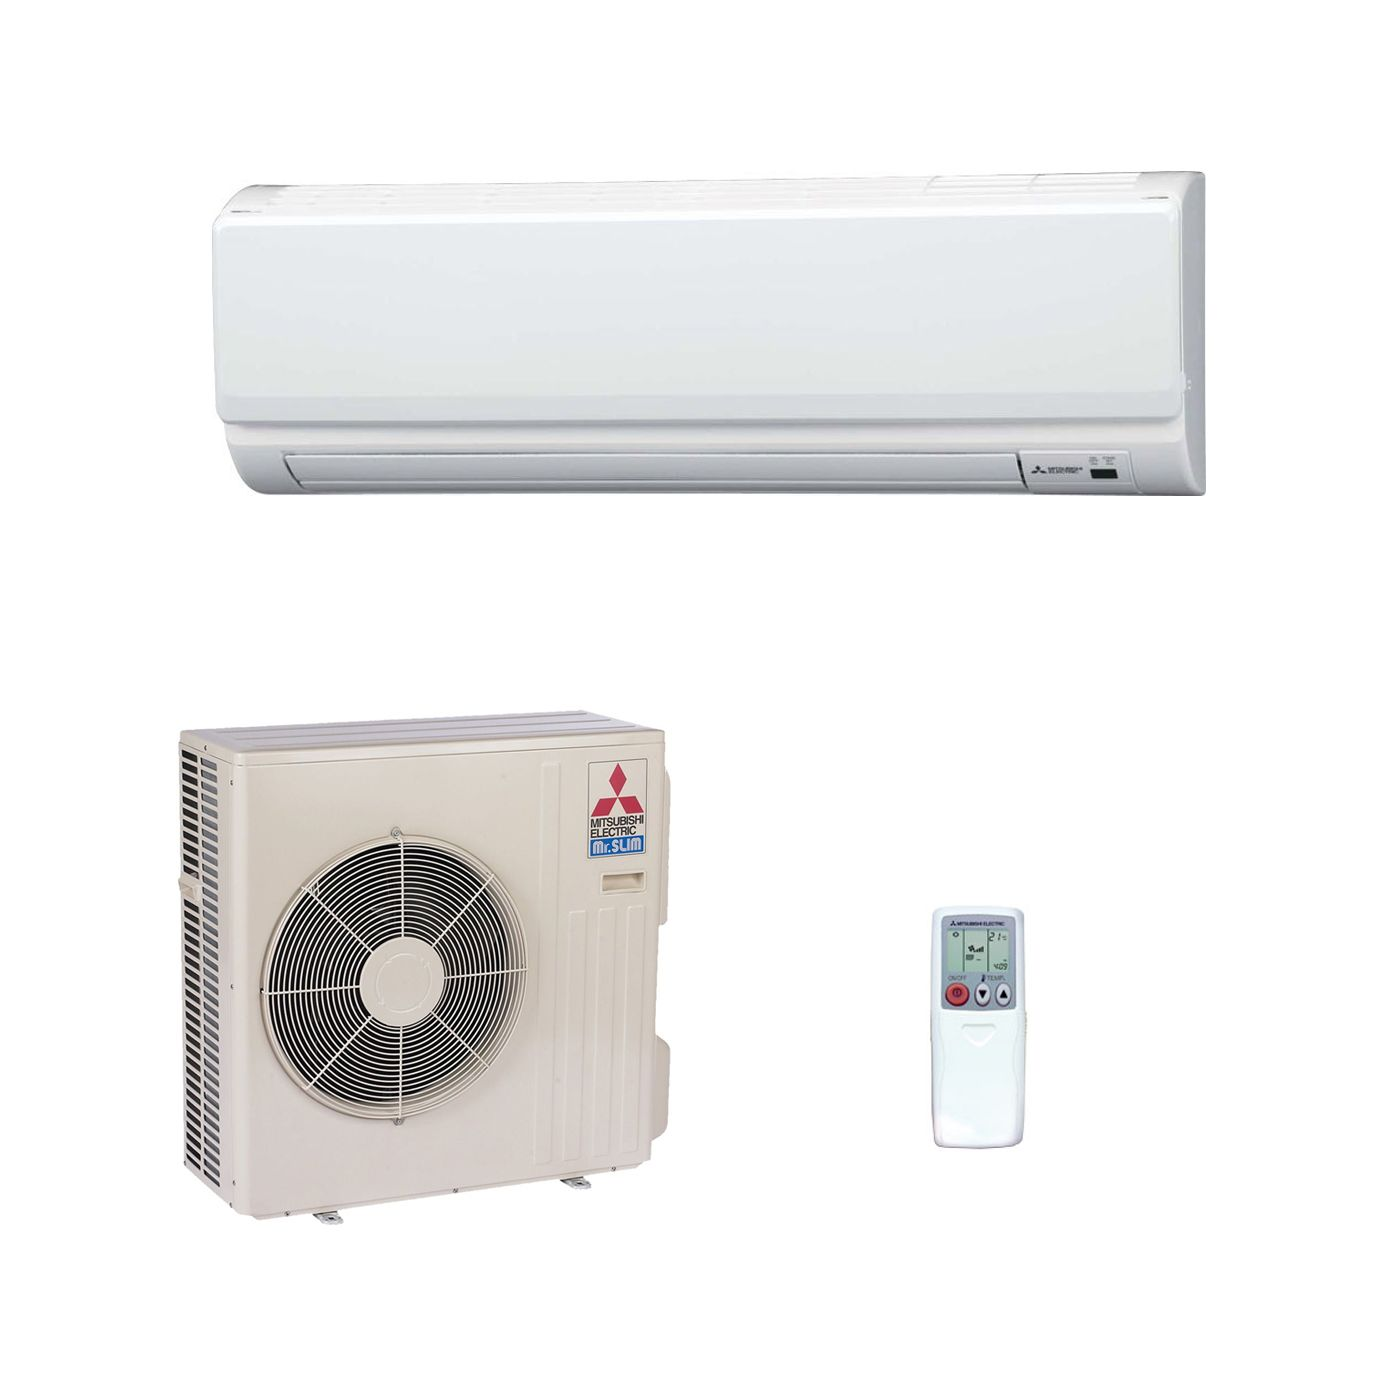 Mitsubishi Electric Air Conditioning Heat Pump Inverter Mr